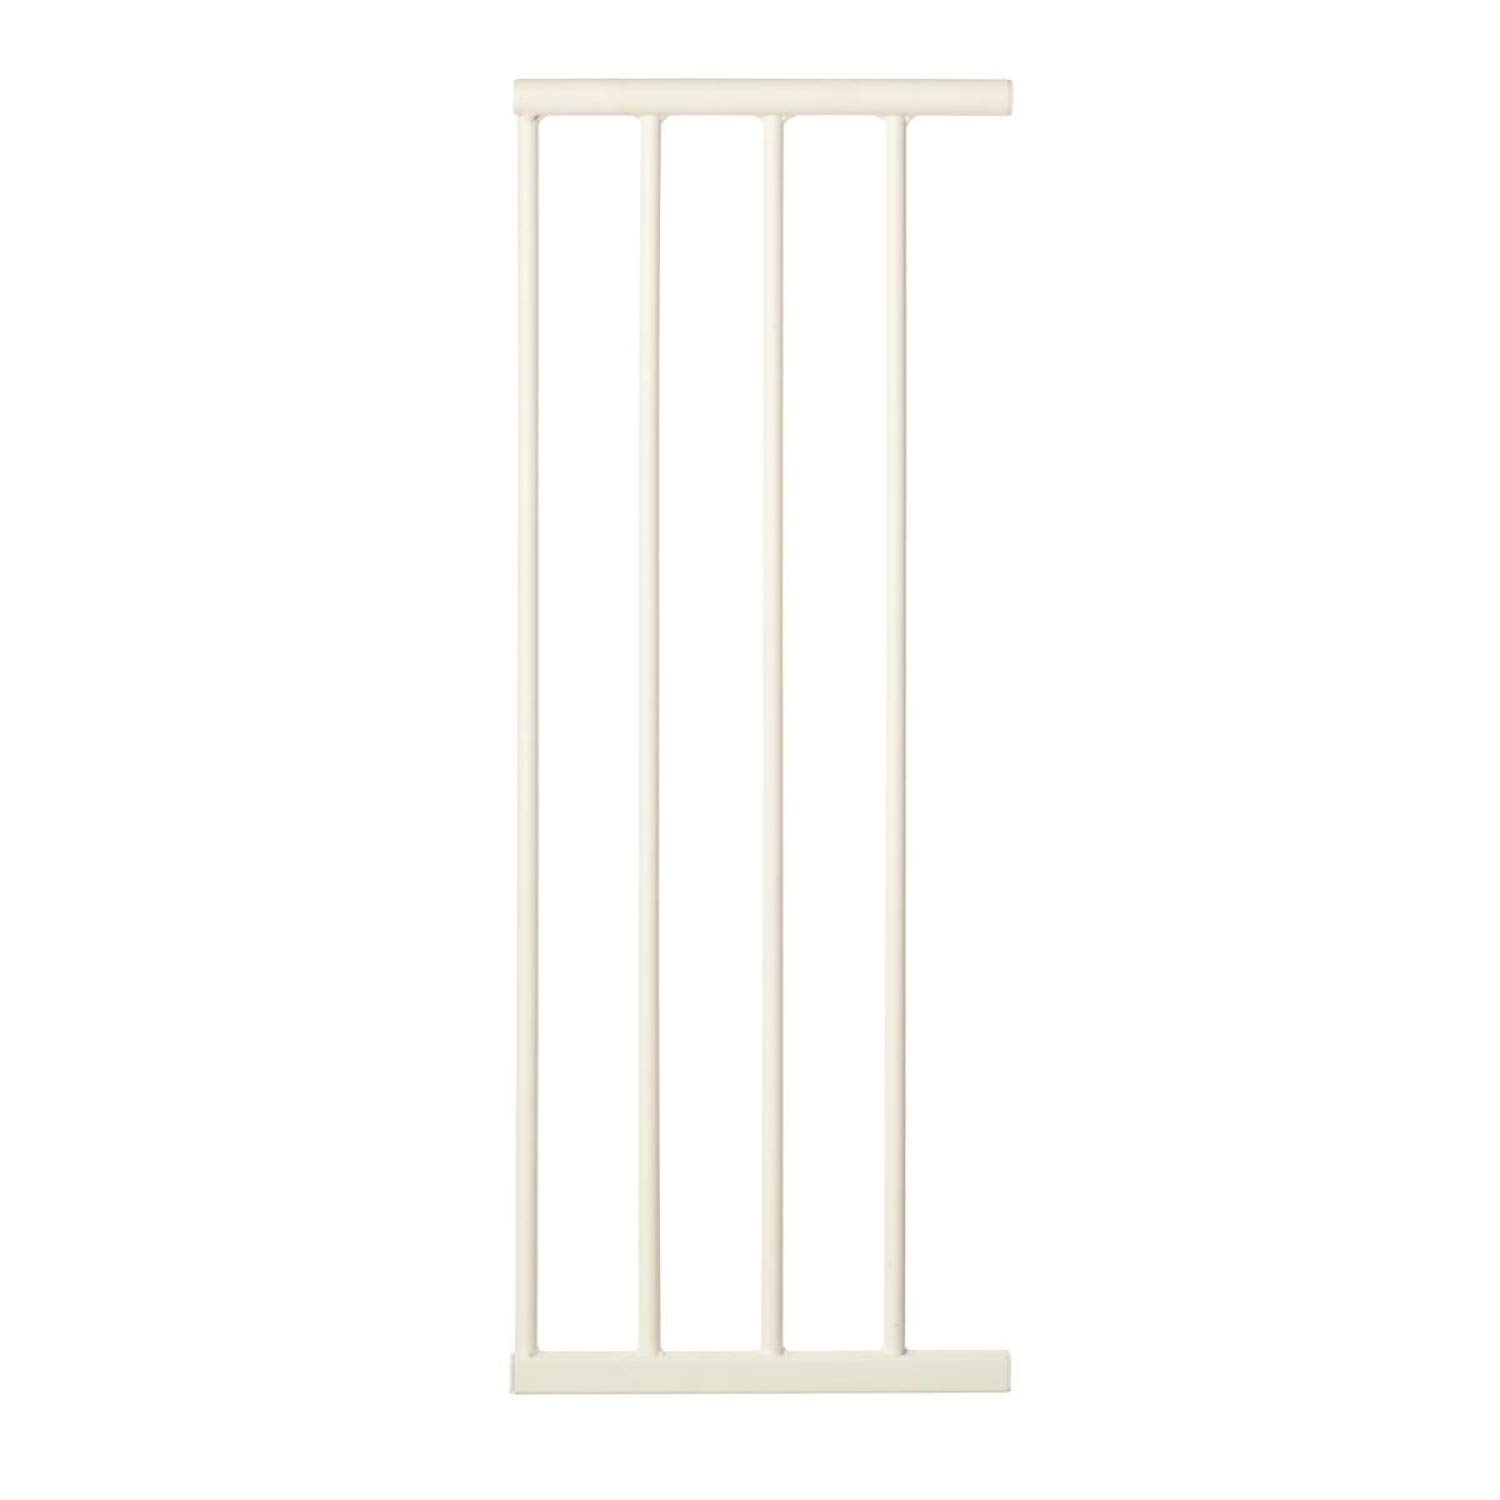 """Toddleroo by North States 4 Bar Extension for the Arched Auto Close with Easy Step Baby Gate: Adjust your gate to fit your space. Add up to 3 extensions. No tools required (Adds 10.75"""" width, White)"""